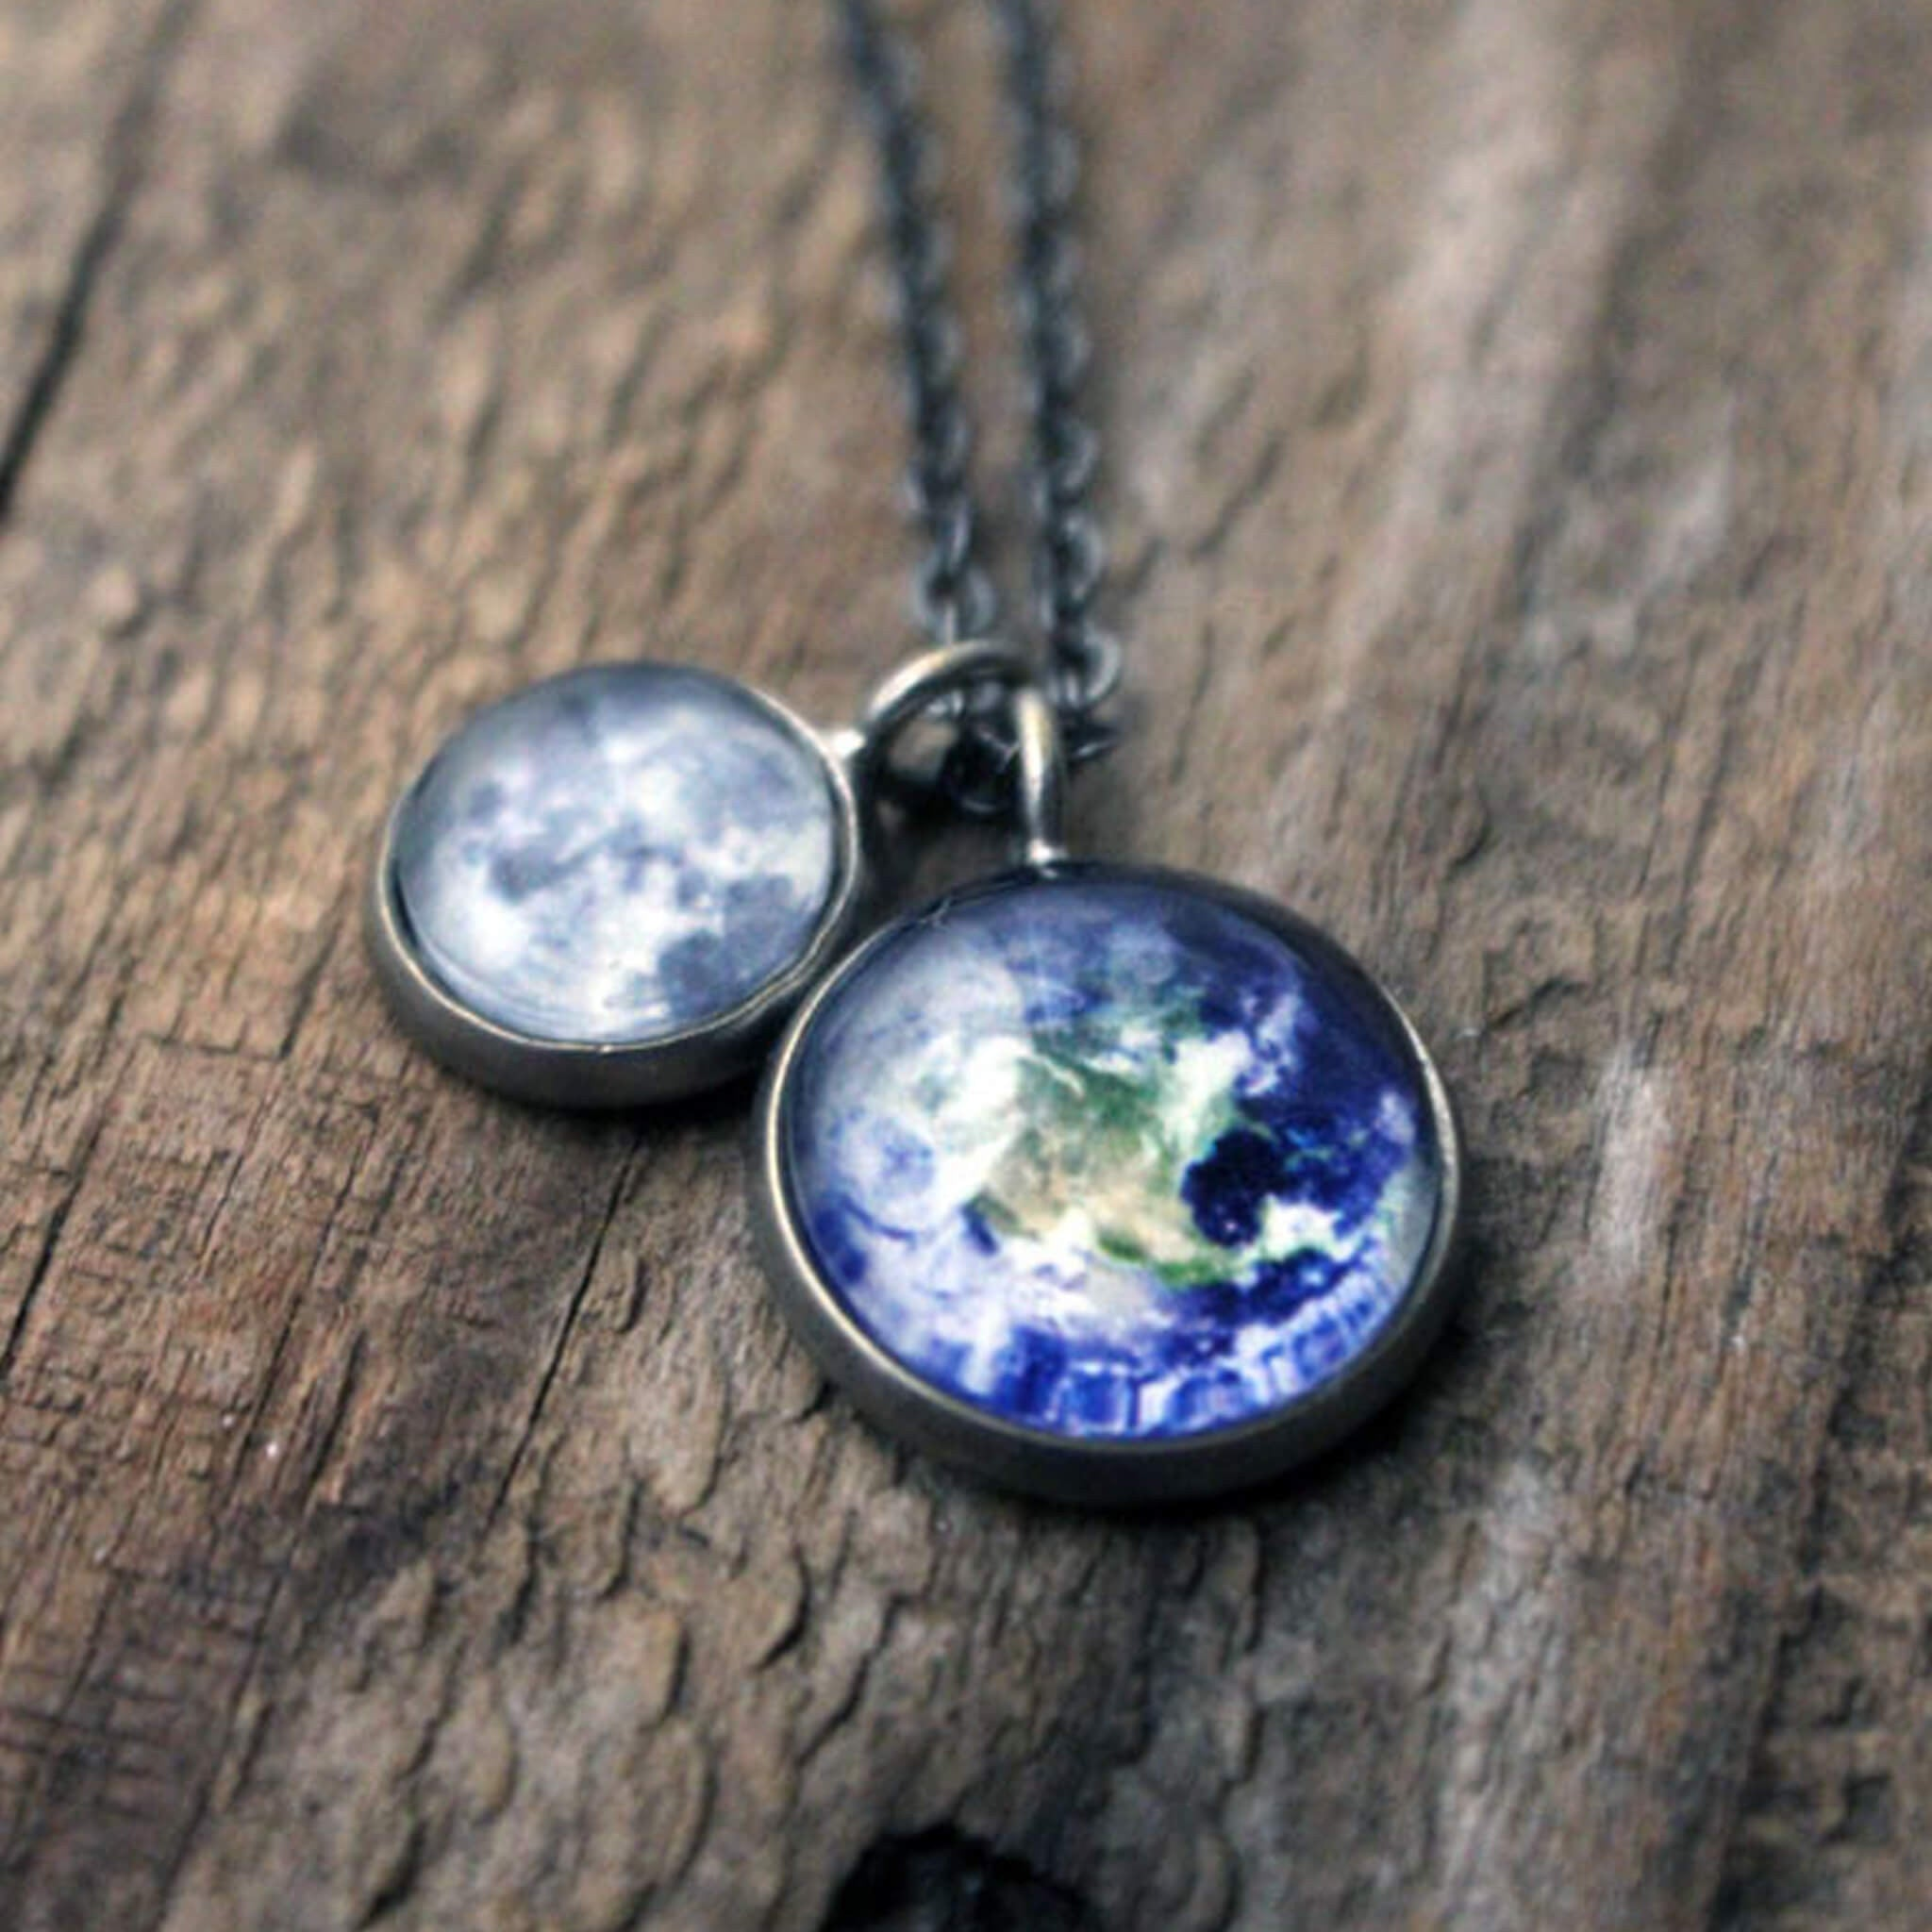 Planet Necklace with Earth and Moon - Handmade Galaxy Jewellery by Lauren Beacham of Yugen Tribe - STEM fashion featuring the solar system